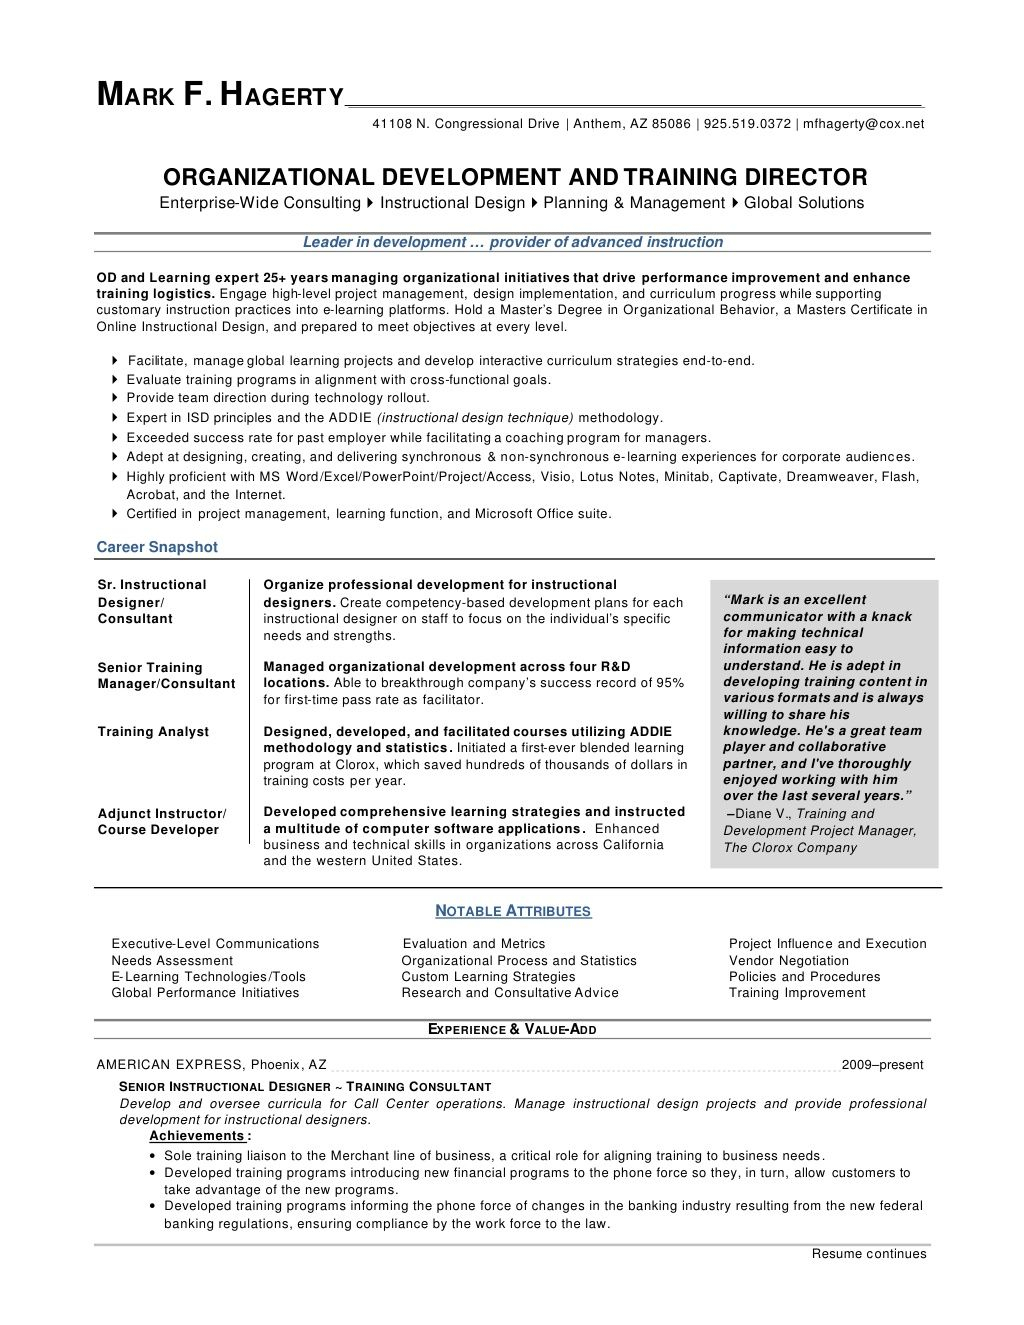 Trainer Resume Sample - Mark F Hagerty Od Training Director Resume by Mfhagerty Via